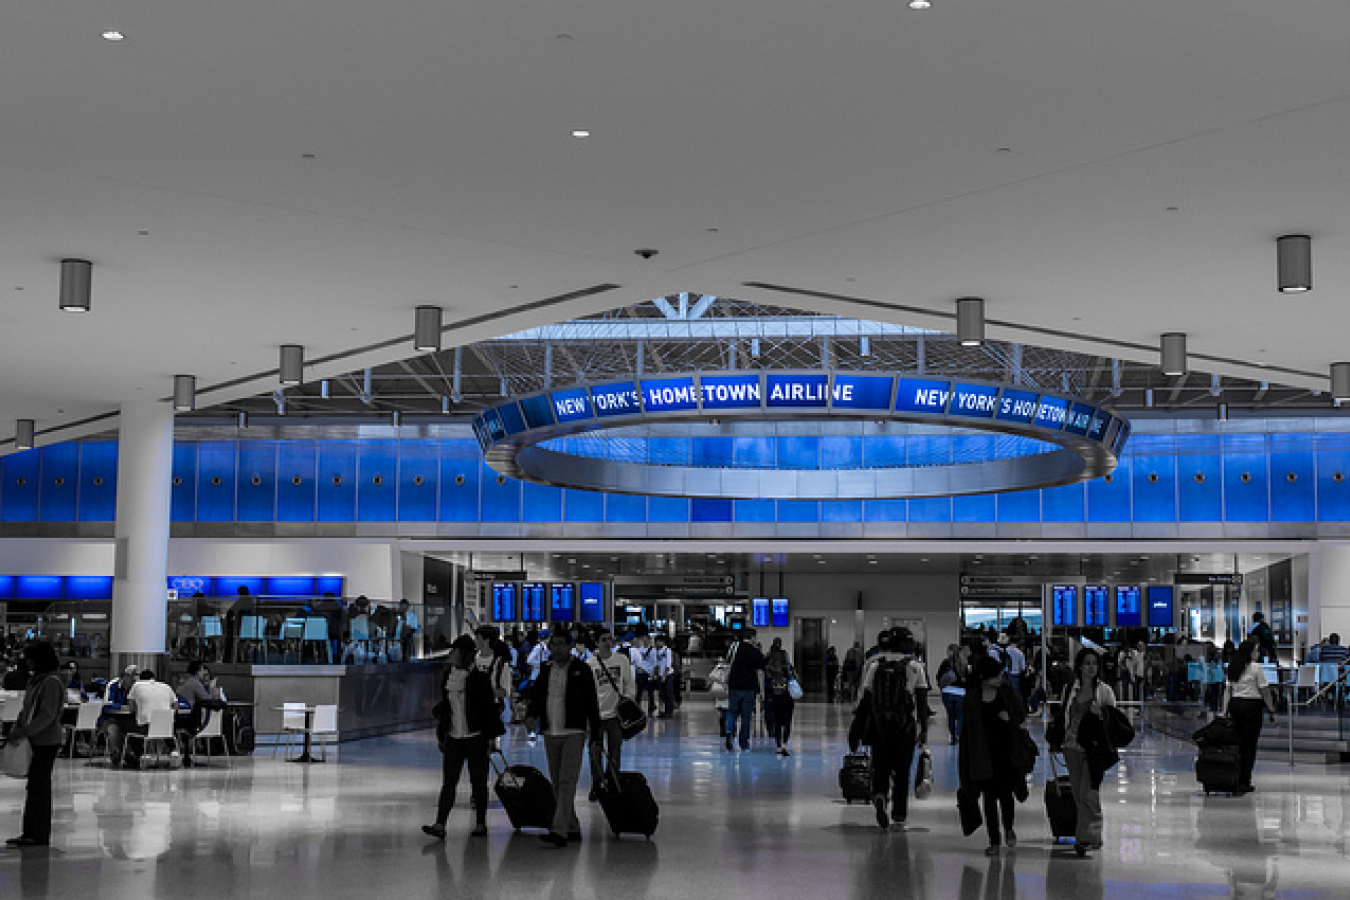 JFK International Airport, New York, USA